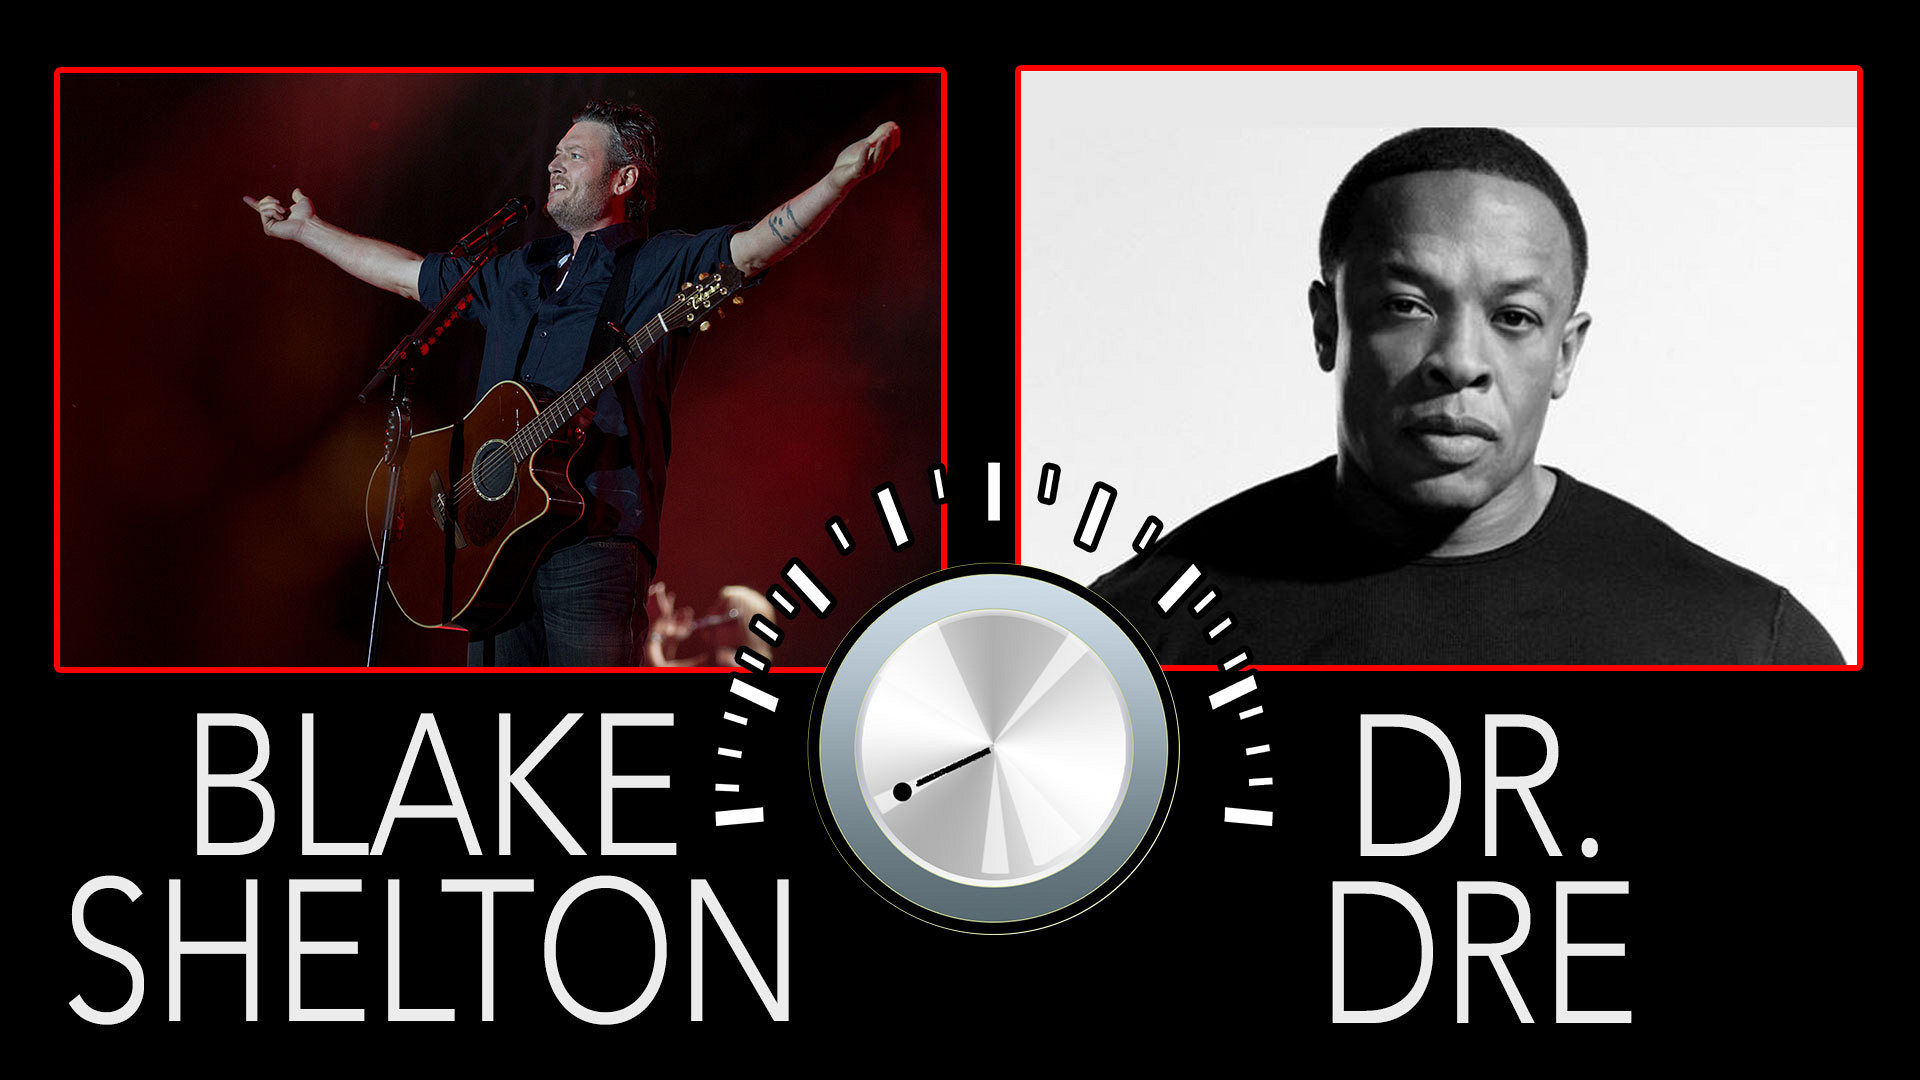 Blake Shelton and Dr. Dre share some major connections.